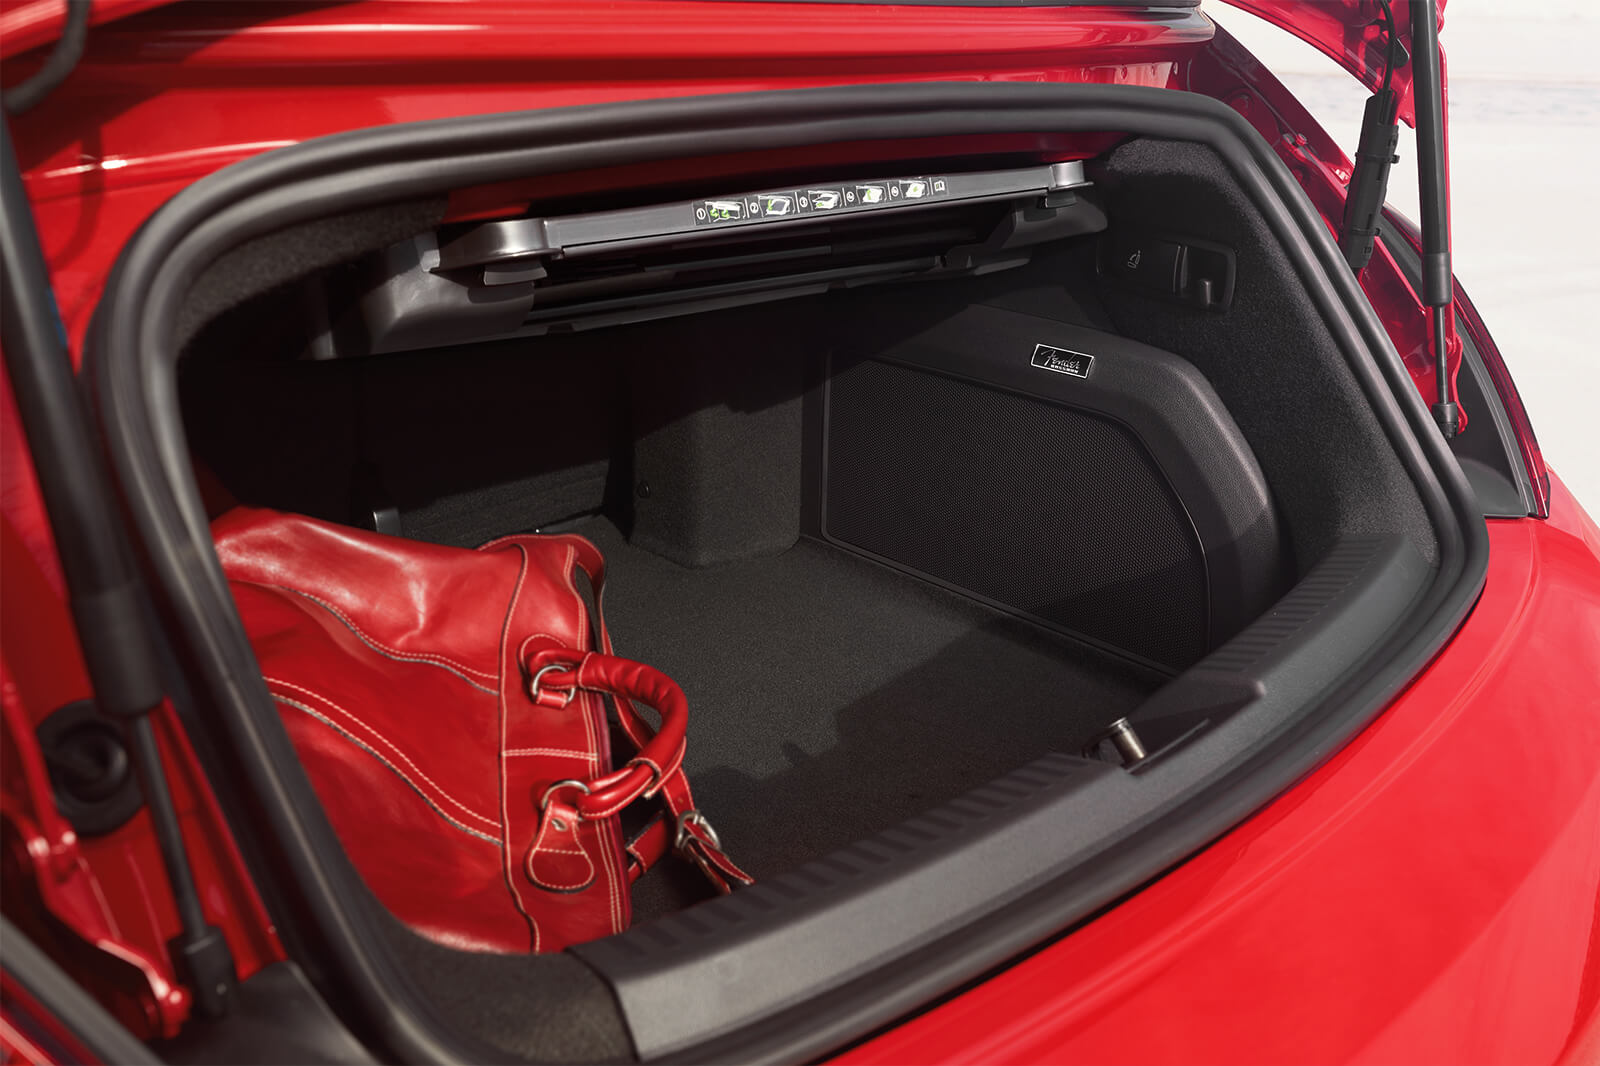 2019 Volkswagen Beetle Convertible SE Interior Trunk Red Picture